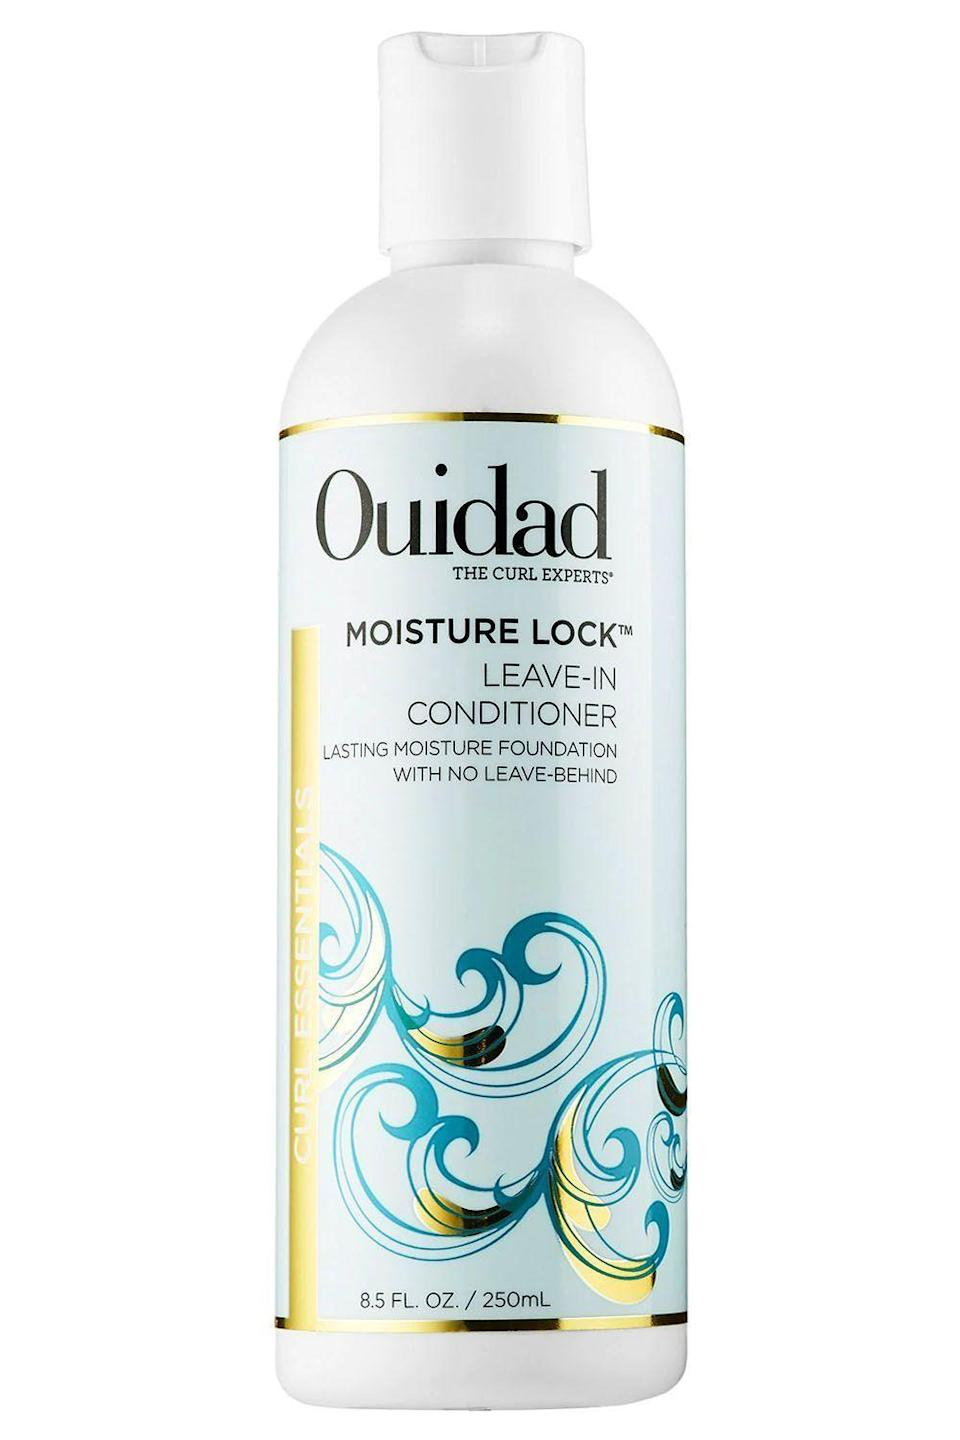 """<p><strong>Ouidad</strong></p><p>ulta.com</p><p><strong>$26.00</strong></p><p><a href=""""https://go.redirectingat.com?id=74968X1596630&url=https%3A%2F%2Fwww.ulta.com%2Fmoisture-lock-leave-in-conditioner%3FproductId%3DxlsImpprod3780009&sref=https%3A%2F%2Fwww.cosmopolitan.com%2Fstyle-beauty%2Fbeauty%2Fg33904669%2Fbest-leave-in-conditioners-for-natural-hair%2F"""" rel=""""nofollow noopener"""" target=""""_blank"""" data-ylk=""""slk:Shop Now"""" class=""""link rapid-noclick-resp"""">Shop Now</a></p><p>If you think it's impossible to add body and moisture without dealing with gunky residue, this leave-in moisturizer for natural hair will prove you wrong. By sealing in ingredients like green tea, vitamin B5, and prickly pear extract, this <strong>conditioner boosts <a href=""""https://www.cosmopolitan.com/style-beauty/beauty/advice/g2769/volume-hair-products/"""" rel=""""nofollow noopener"""" target=""""_blank"""" data-ylk=""""slk:volume"""" class=""""link rapid-noclick-resp"""">volume</a> and hydration without leaving behind a trace. </strong></p>"""